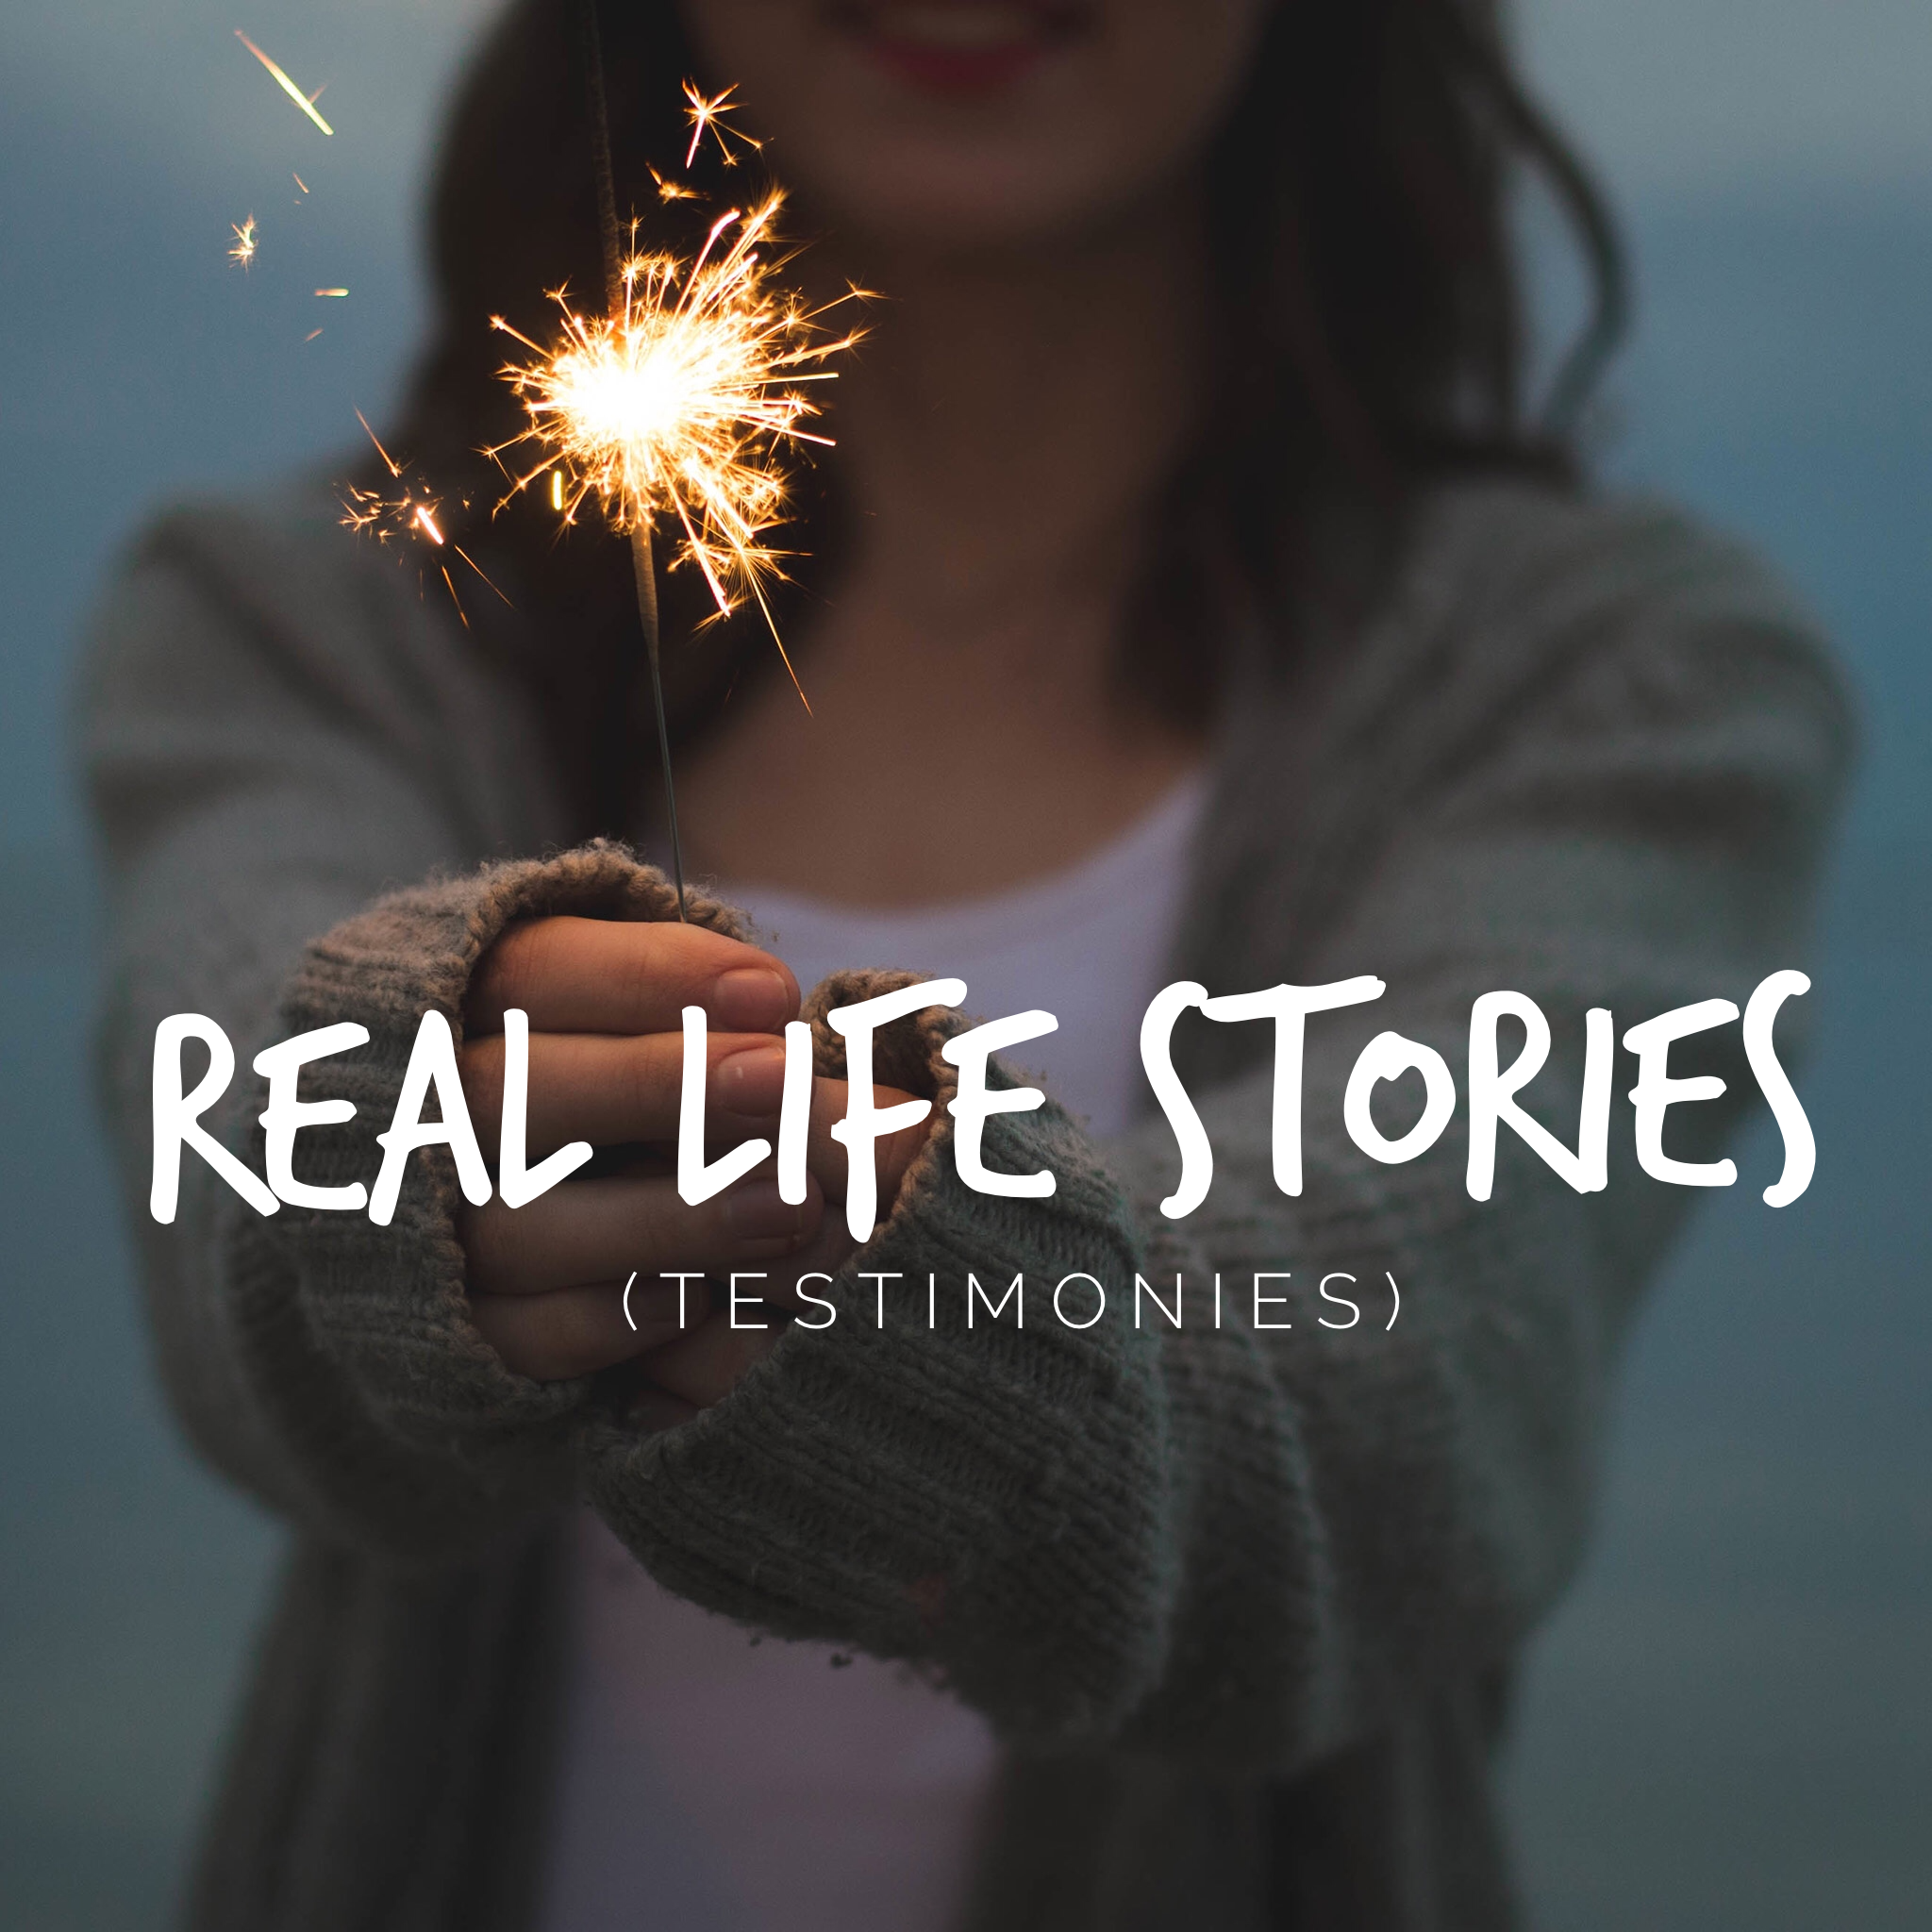 Listen to real life stories of what Jesus is doing in the lives of people.